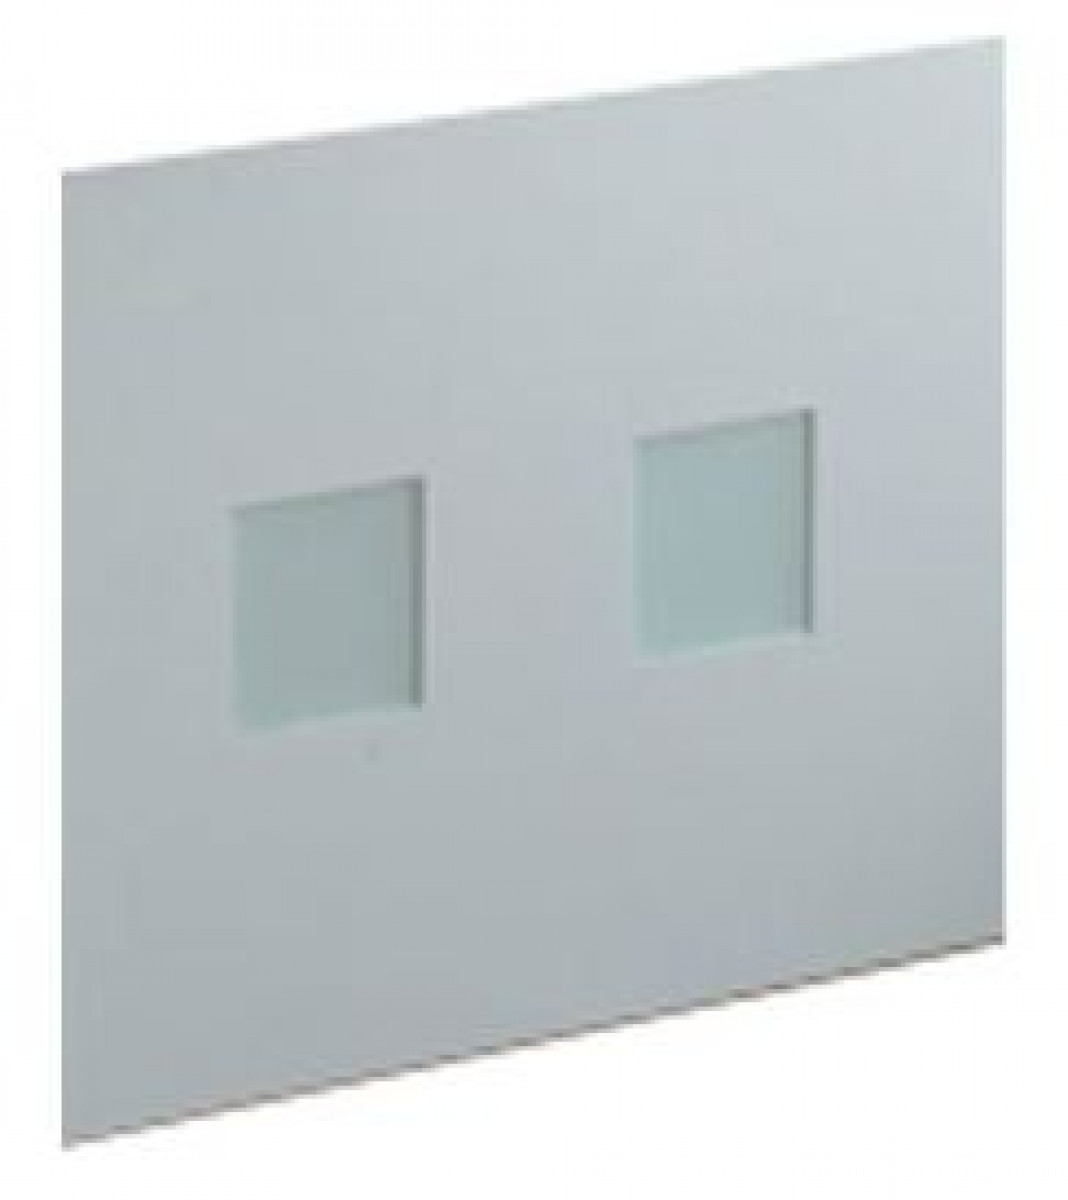 frosted glass bath panels. roper rhodes quattro 700mm end bath panel with frosted glass inserts panels